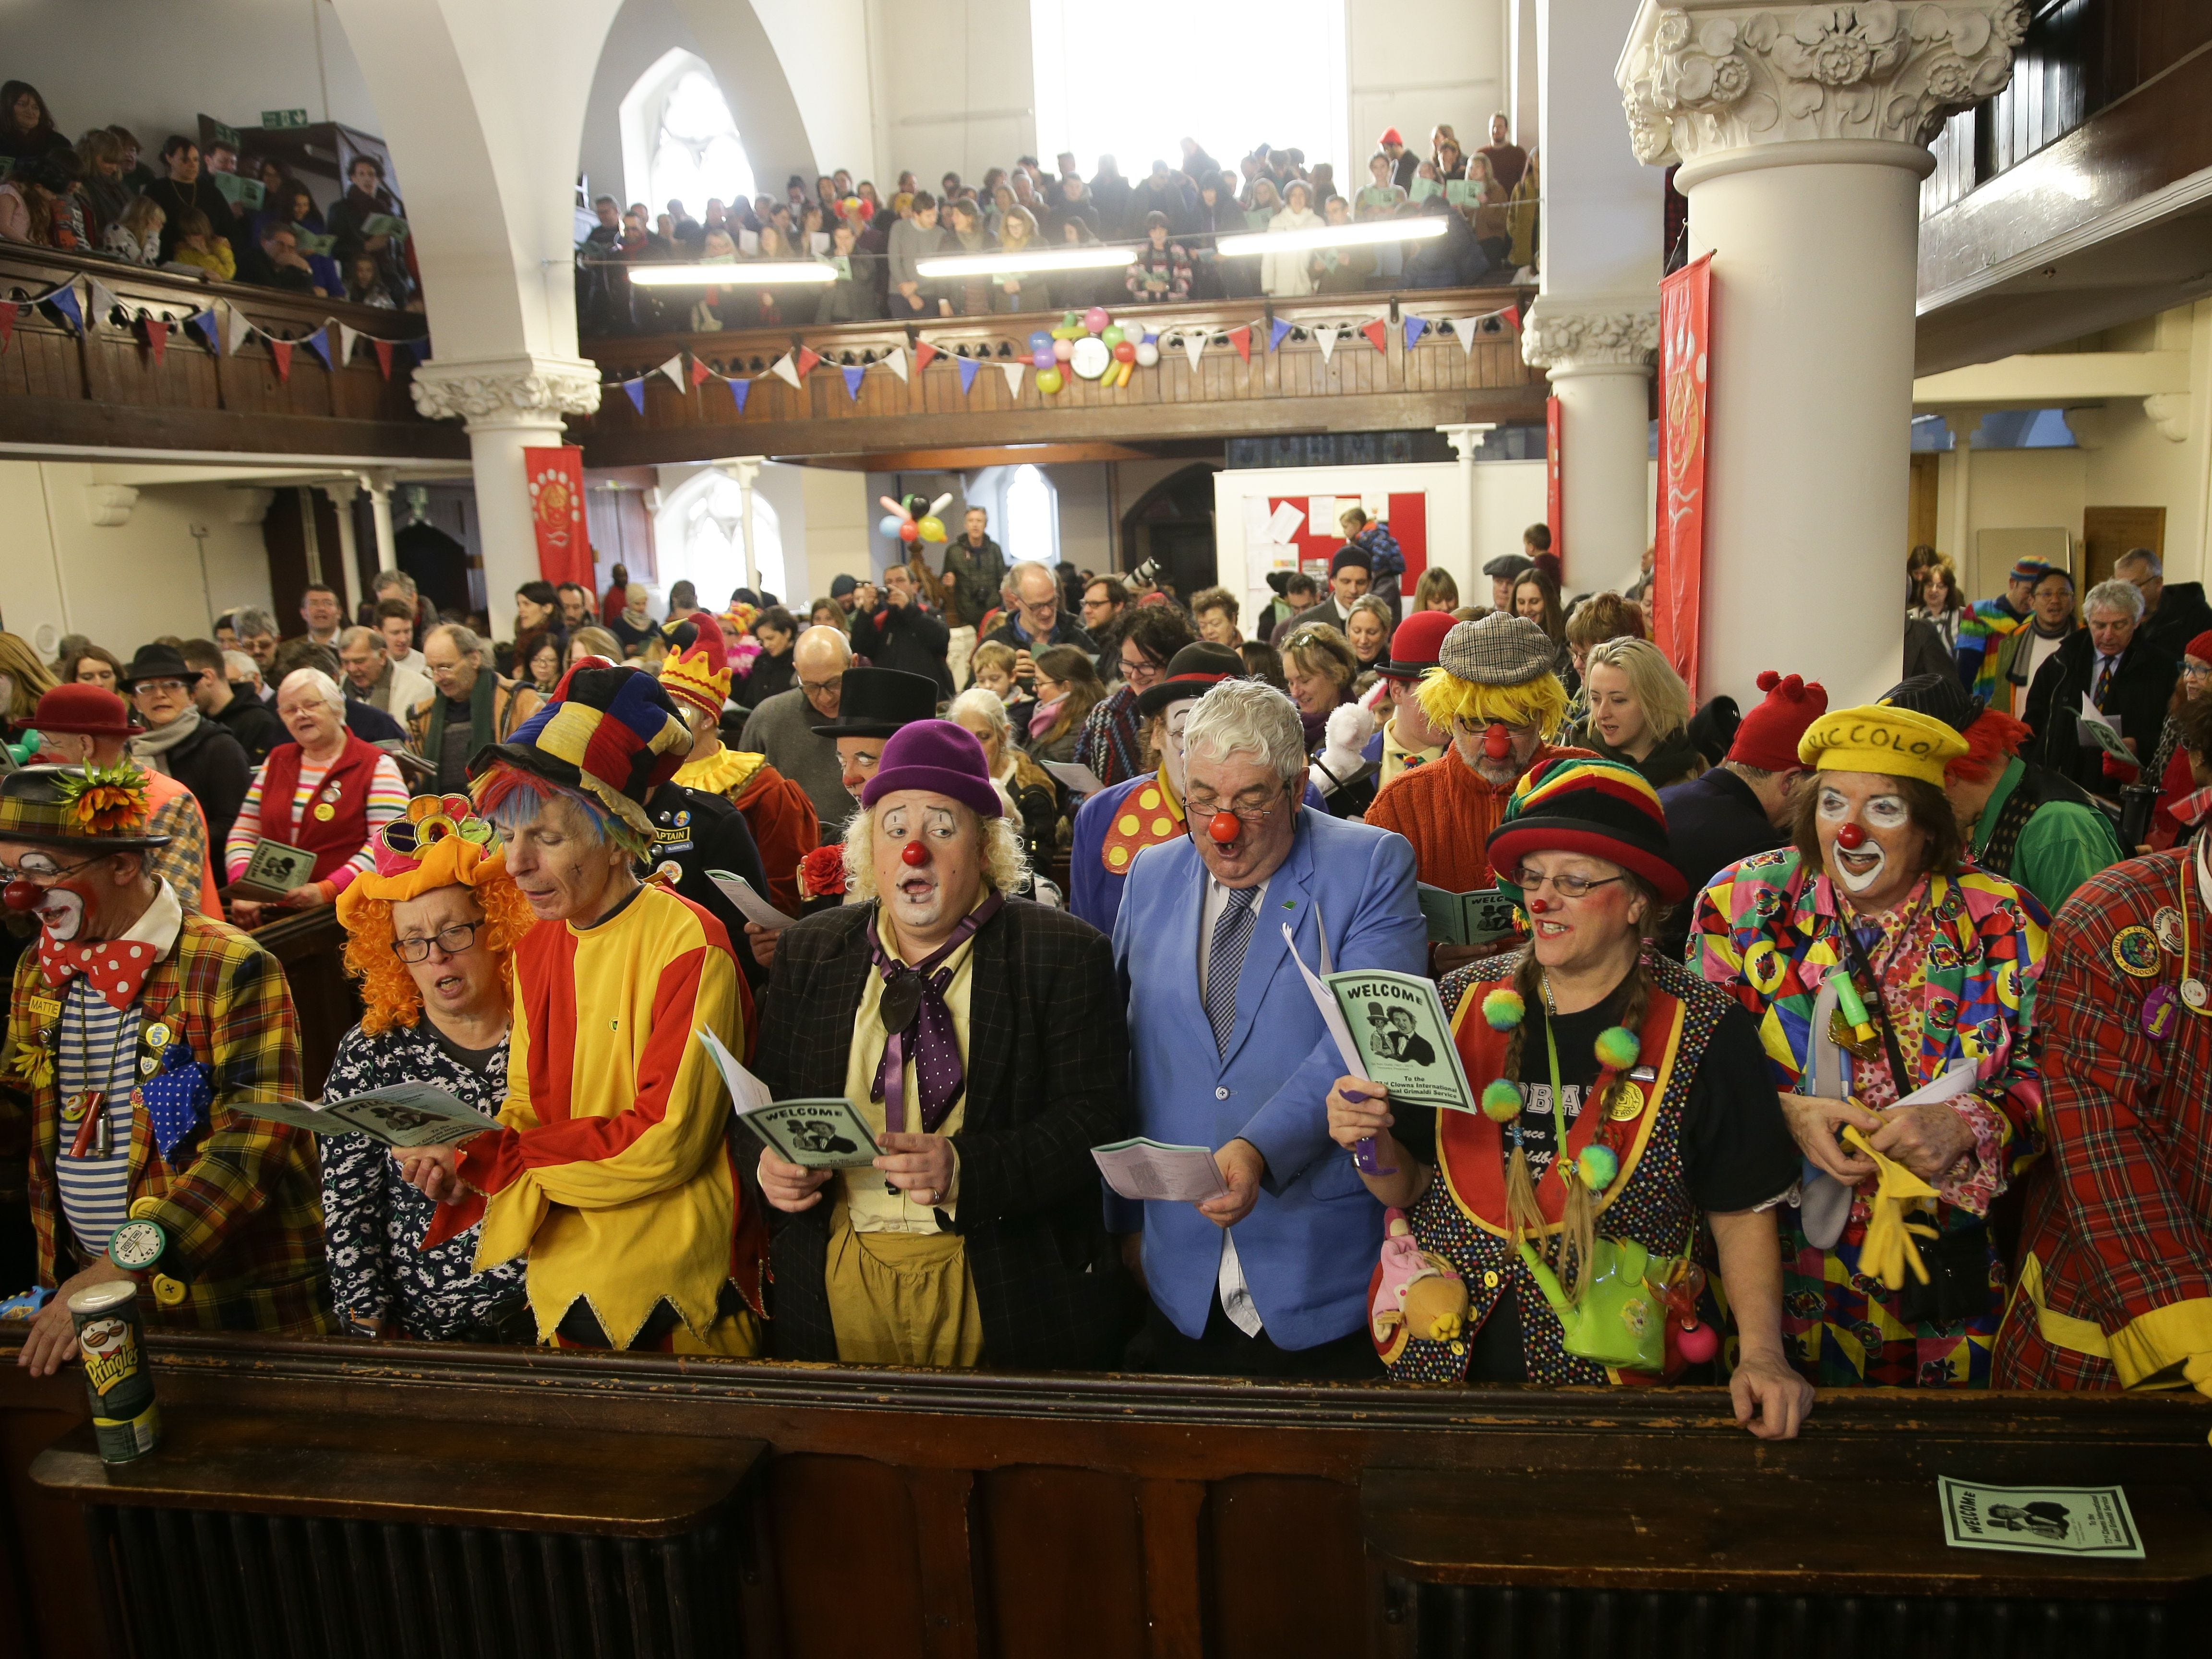 """Clowns attend the 73rd annual Grimaldi Memorial Service at the All Saints church in east London on February 3, 2019. Clowns from across the world gathered for the annual memorial of the legendary Joseph Grimaldi. """"King of clowns"""" Grimaldi was a 19th century English stage performer, and is recognized as having invented the look that came to define the role of a clown."""